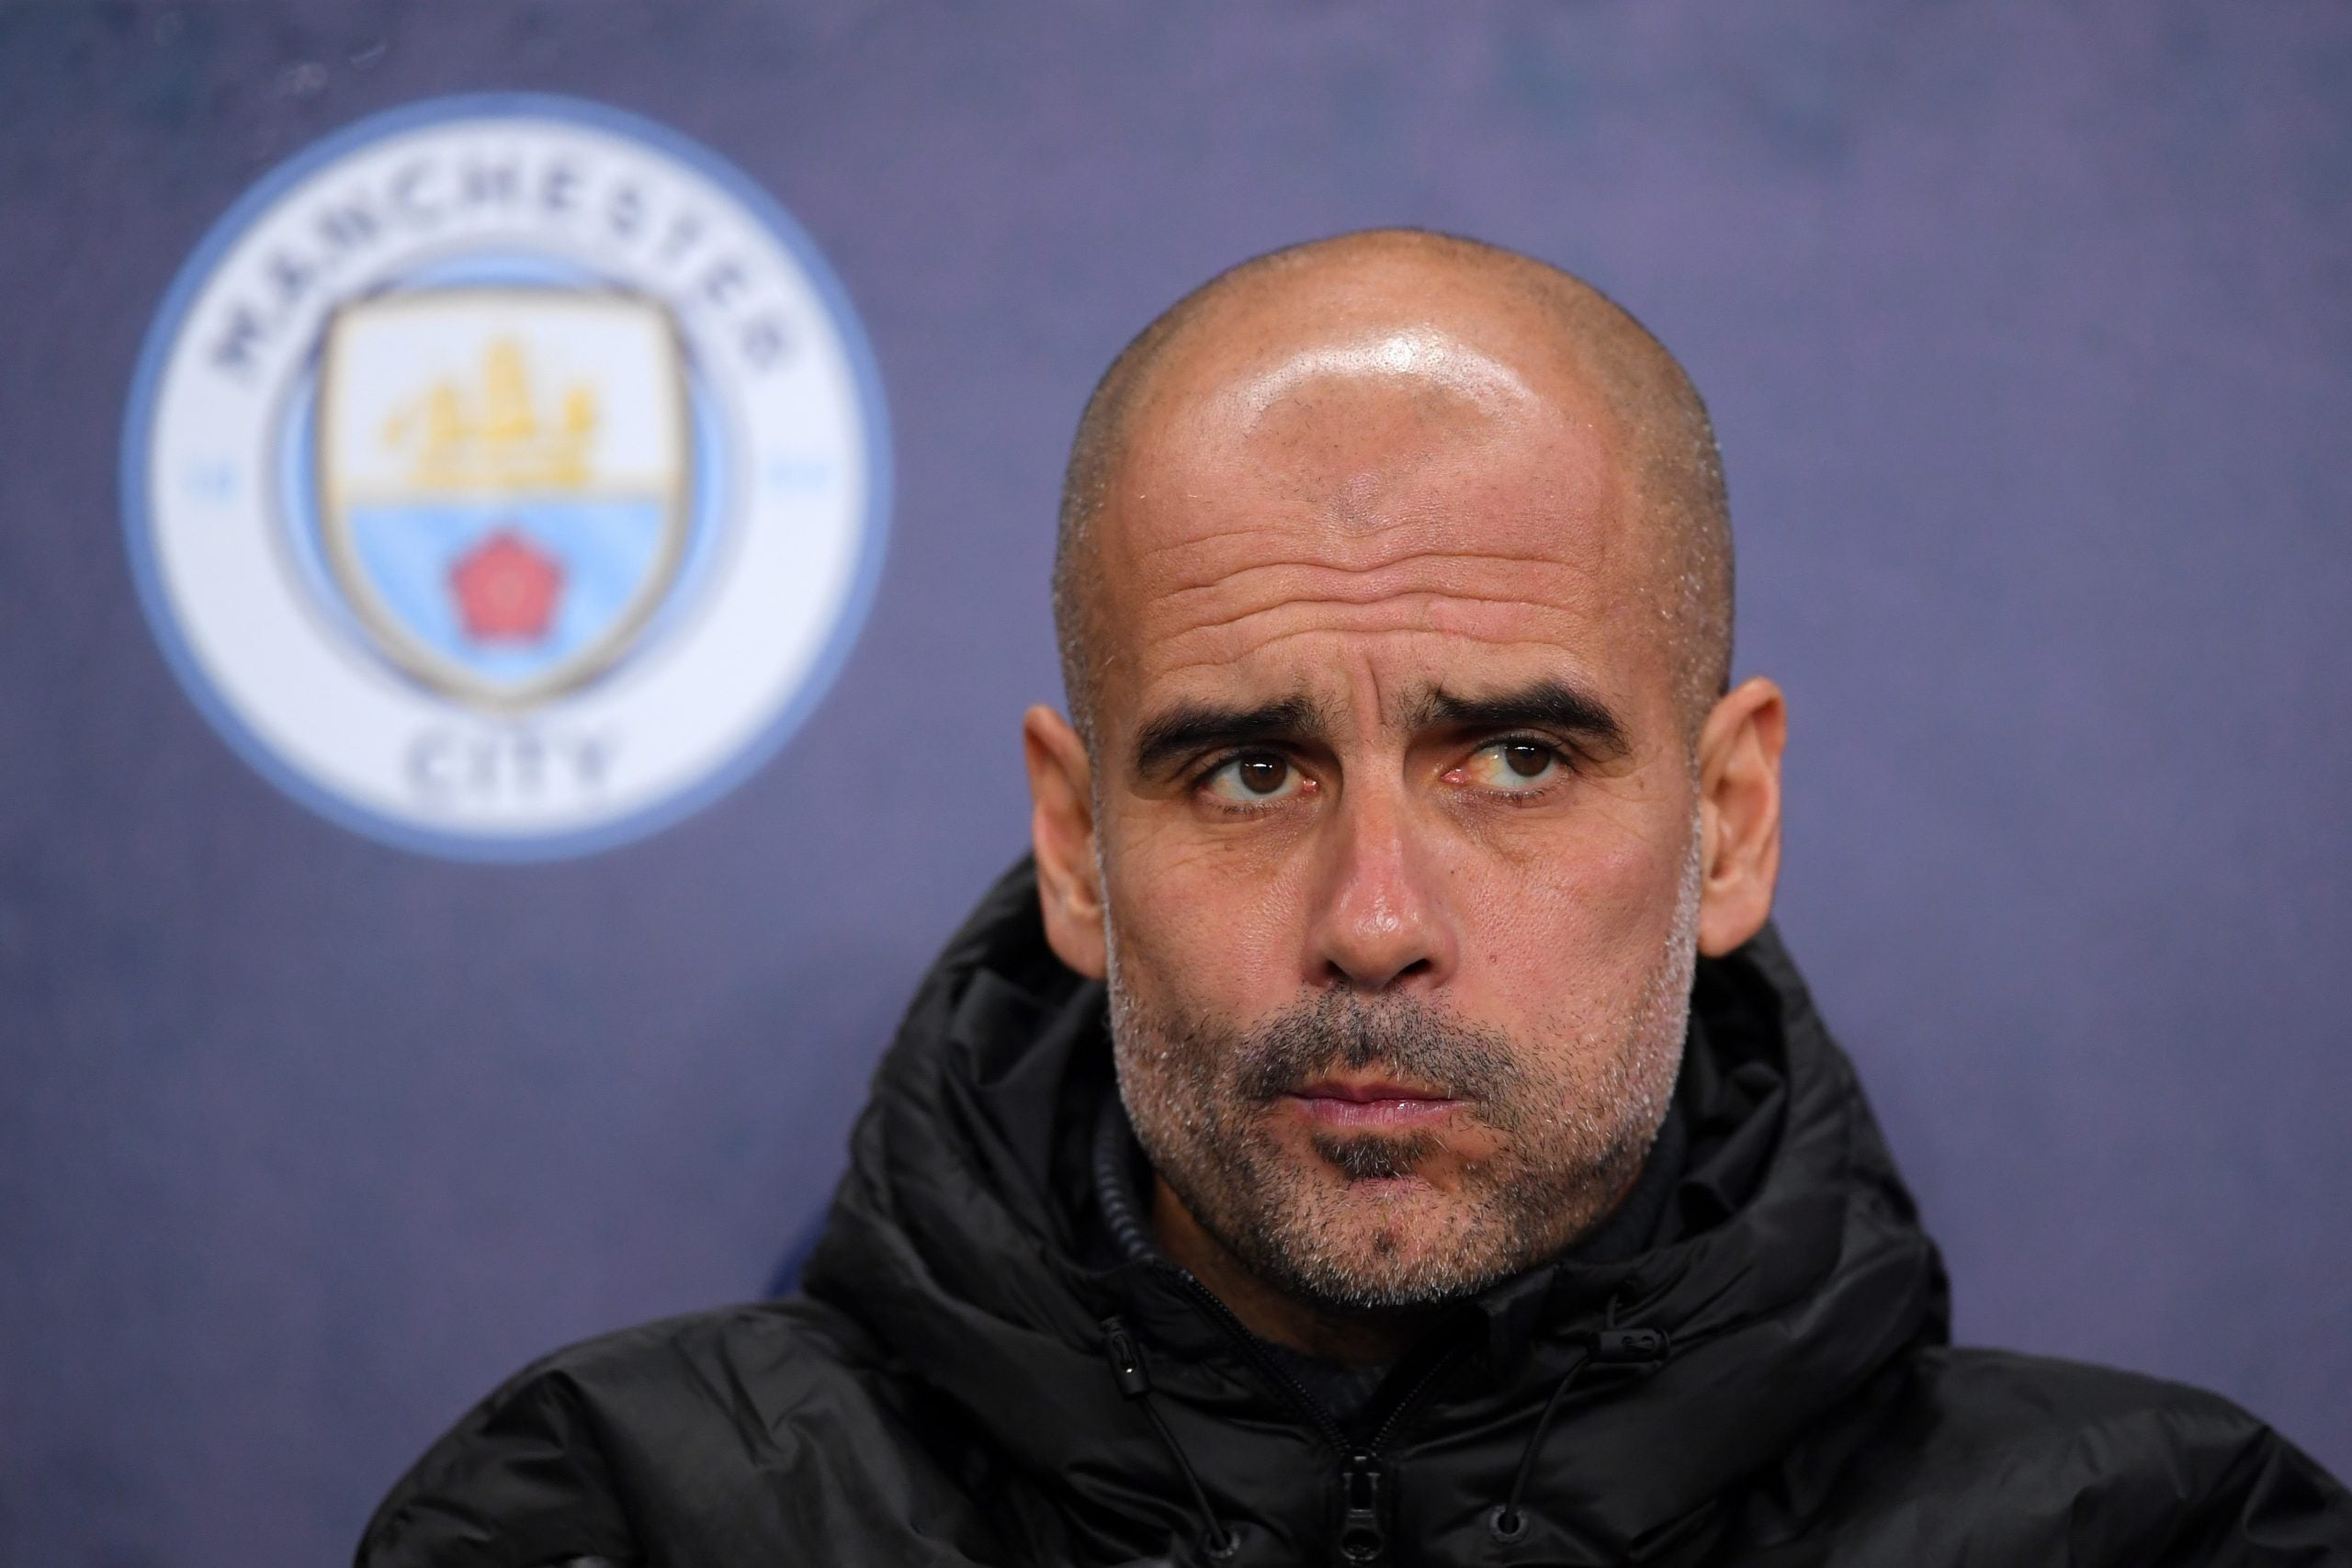 From cheerful suffering to purring, polished artistry: Man City's strange path to glory